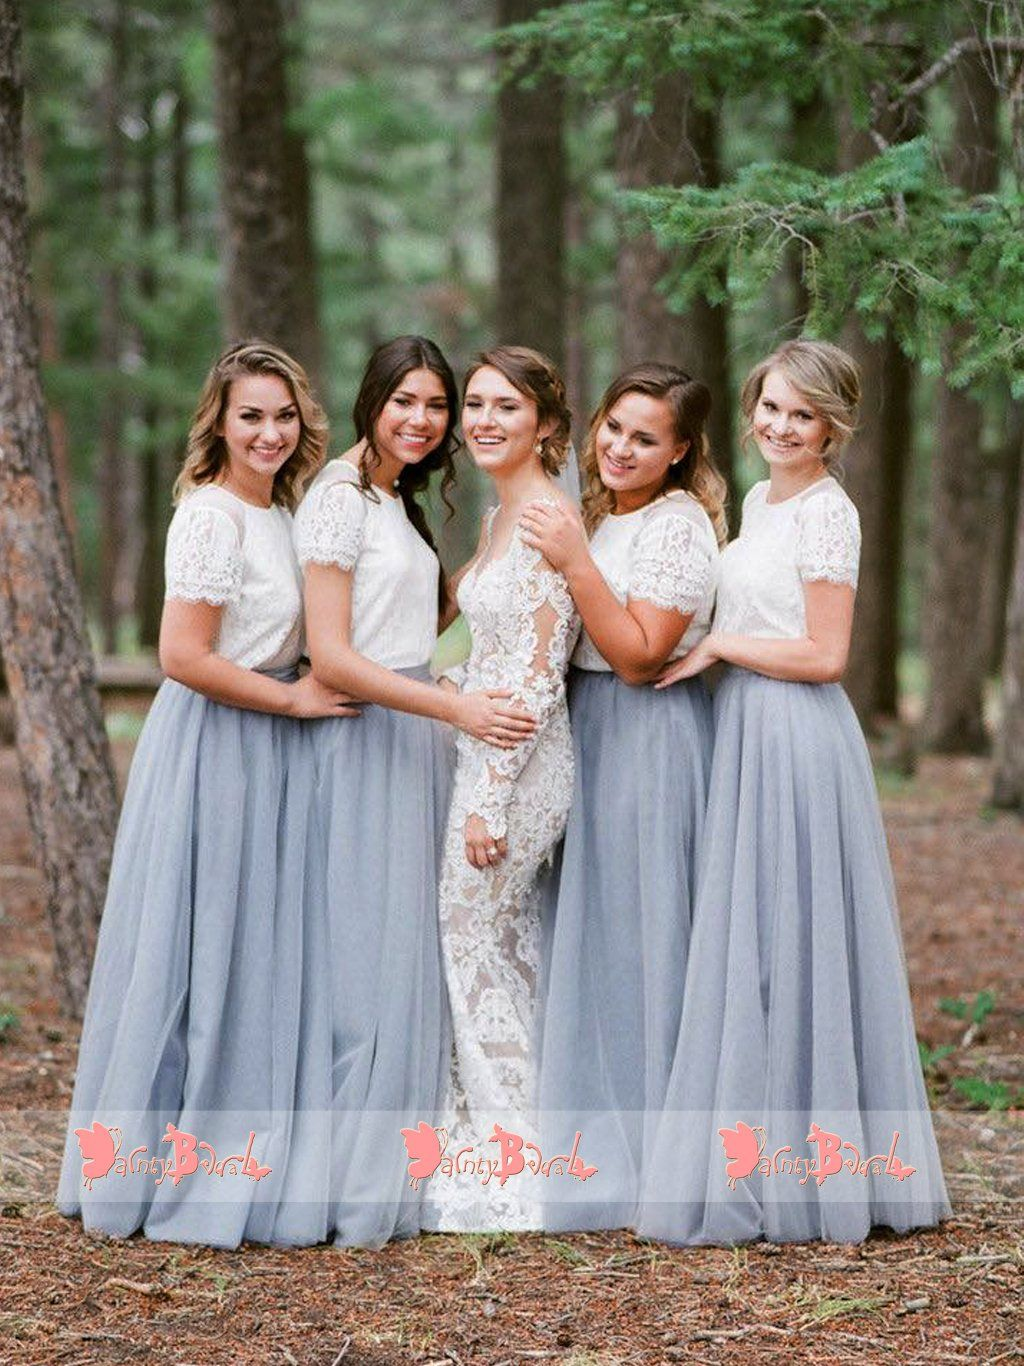 White lace wedding dress with short sleeves  Off White Lace Top Grey Tulle Popular Two Piece Bridesmaid Dresses